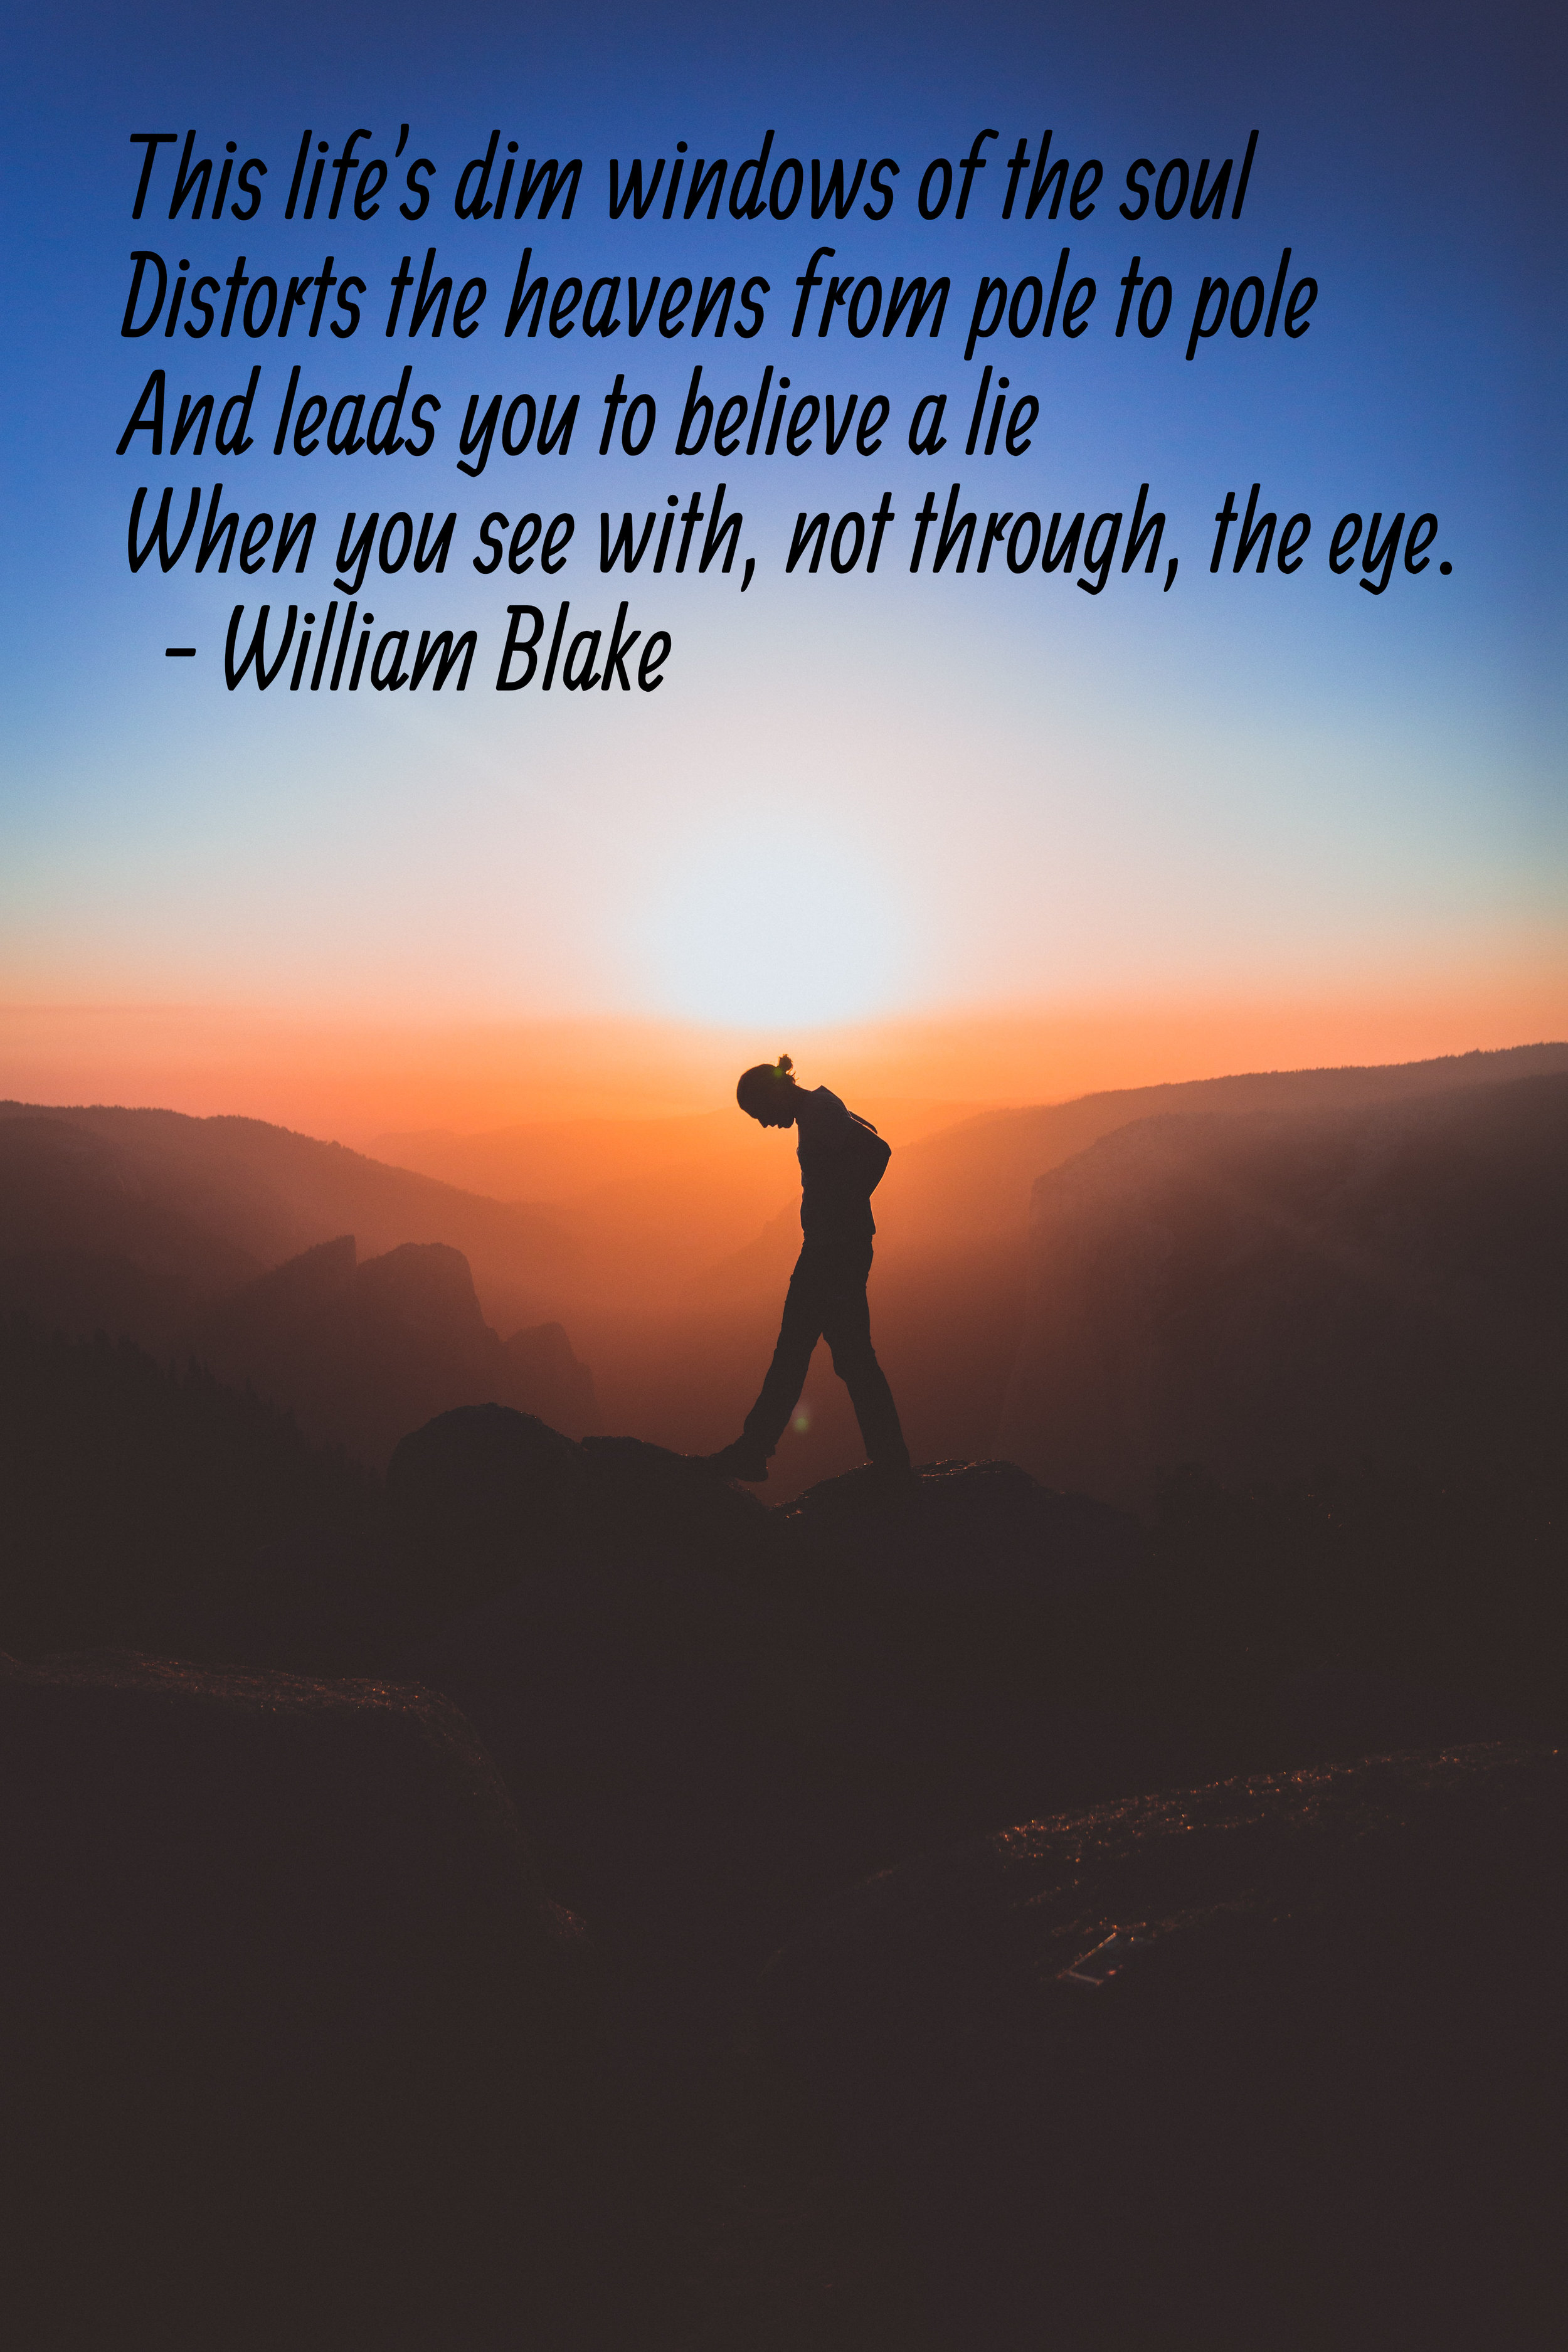 WIlliam Blake Quote.jpg